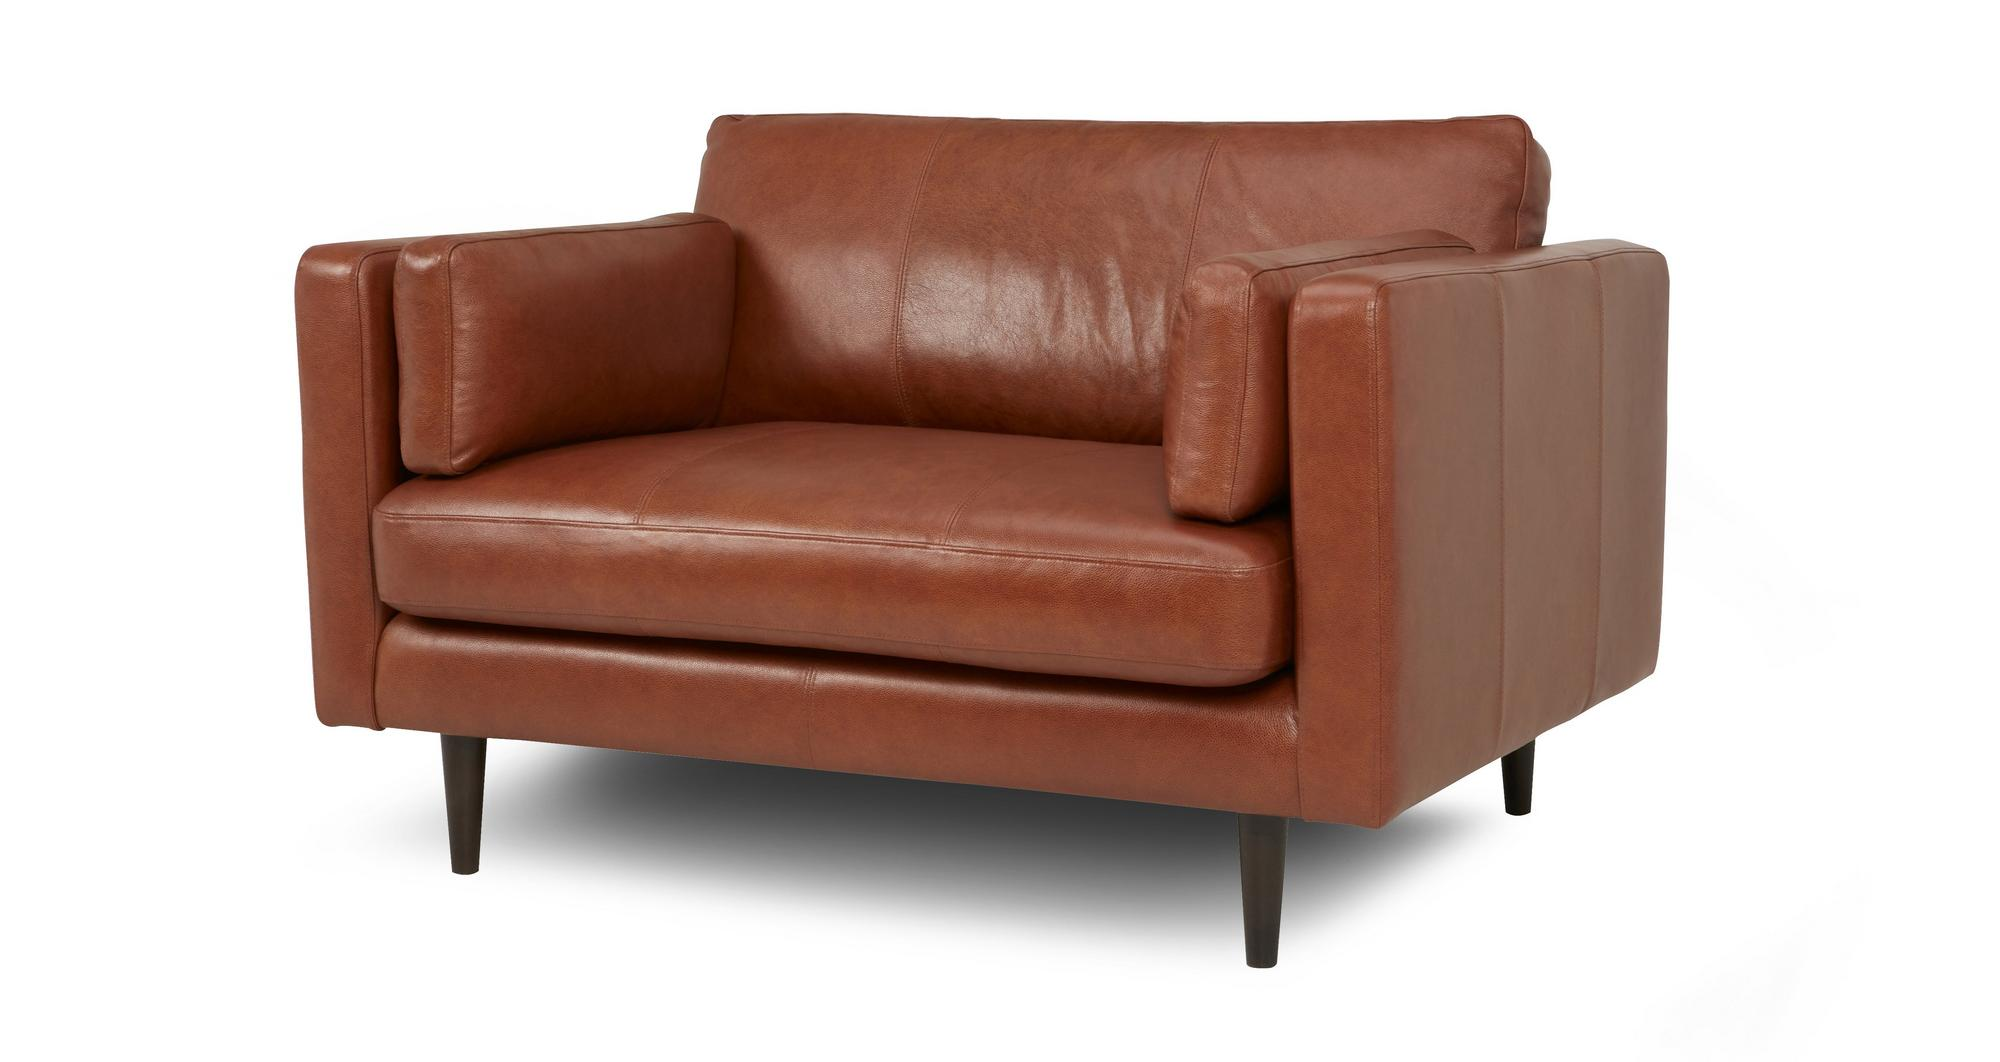 Dfs Marl Tan 100 Leather Large Sofa Small Sofa Cuddler